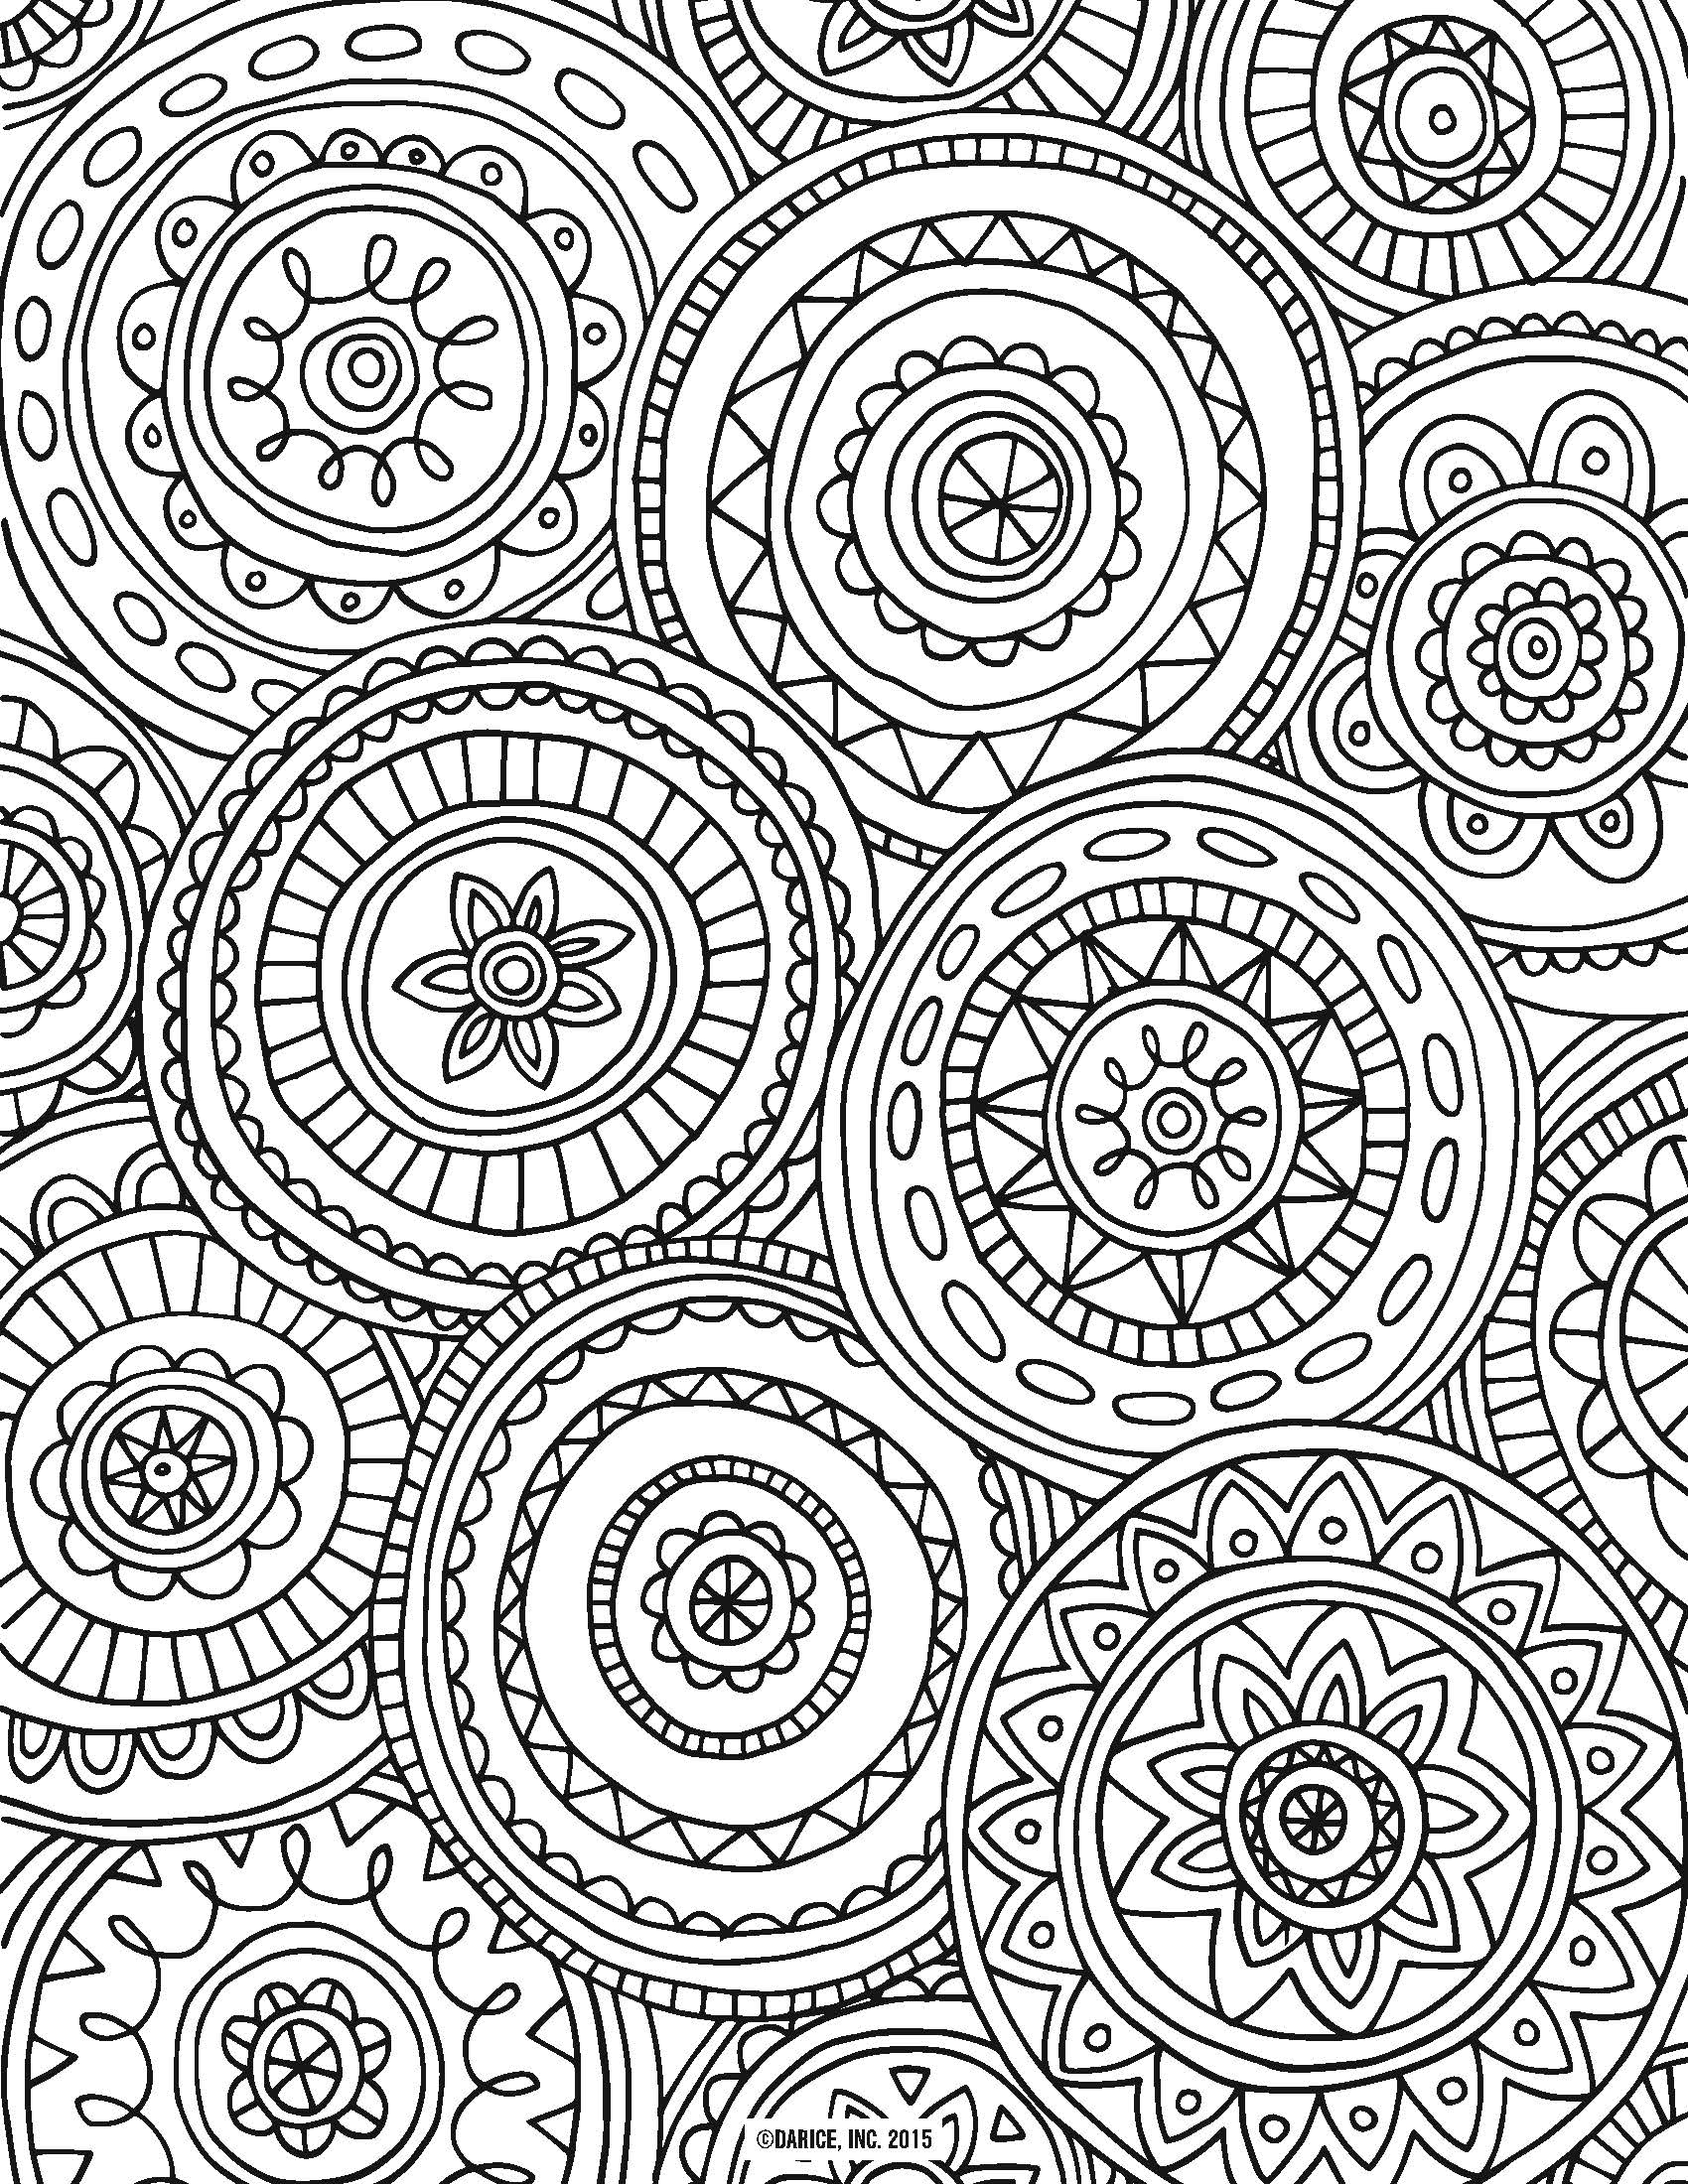 online coloring pages for adults - adult coloring page